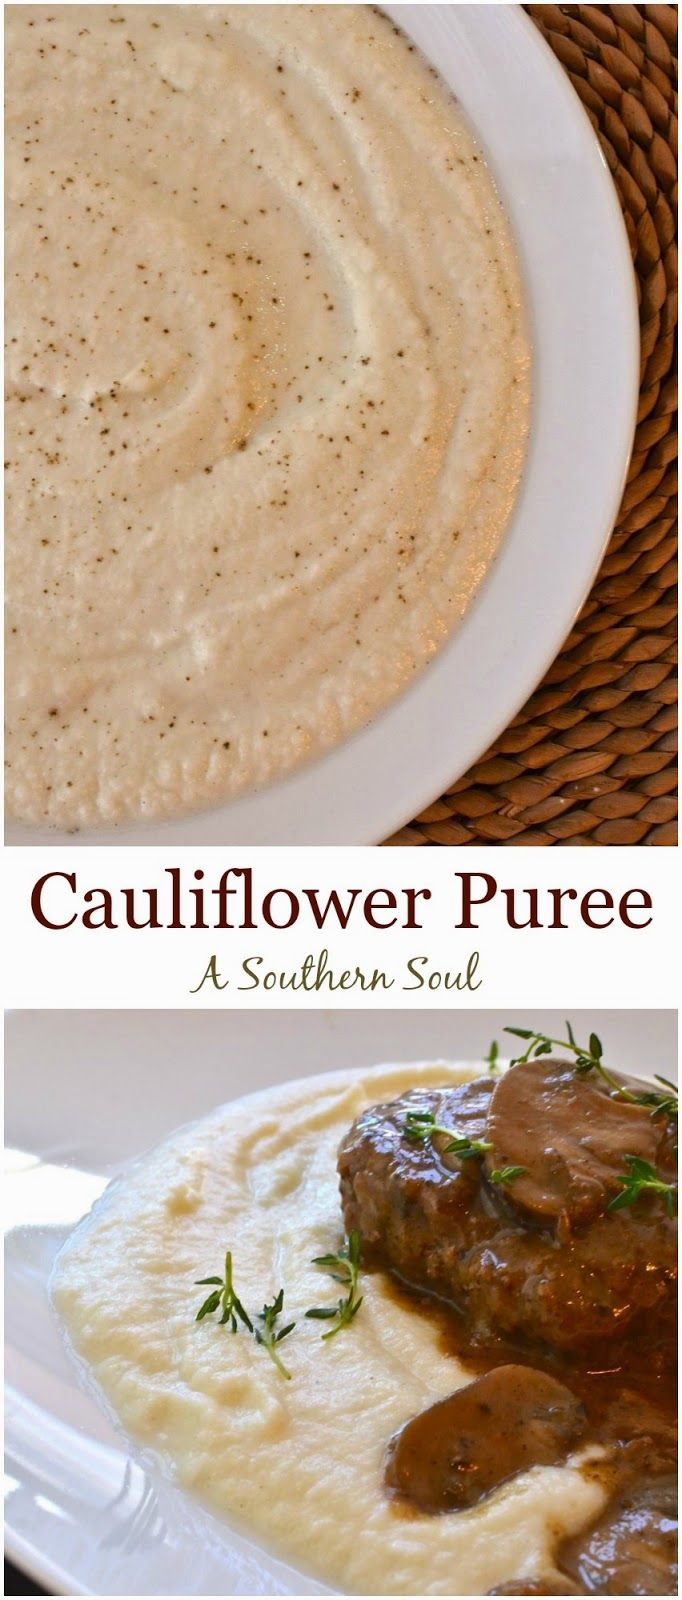 Cauliflower Puree Recipe is creamy, rich & a surprise dish for even the pickests eater!